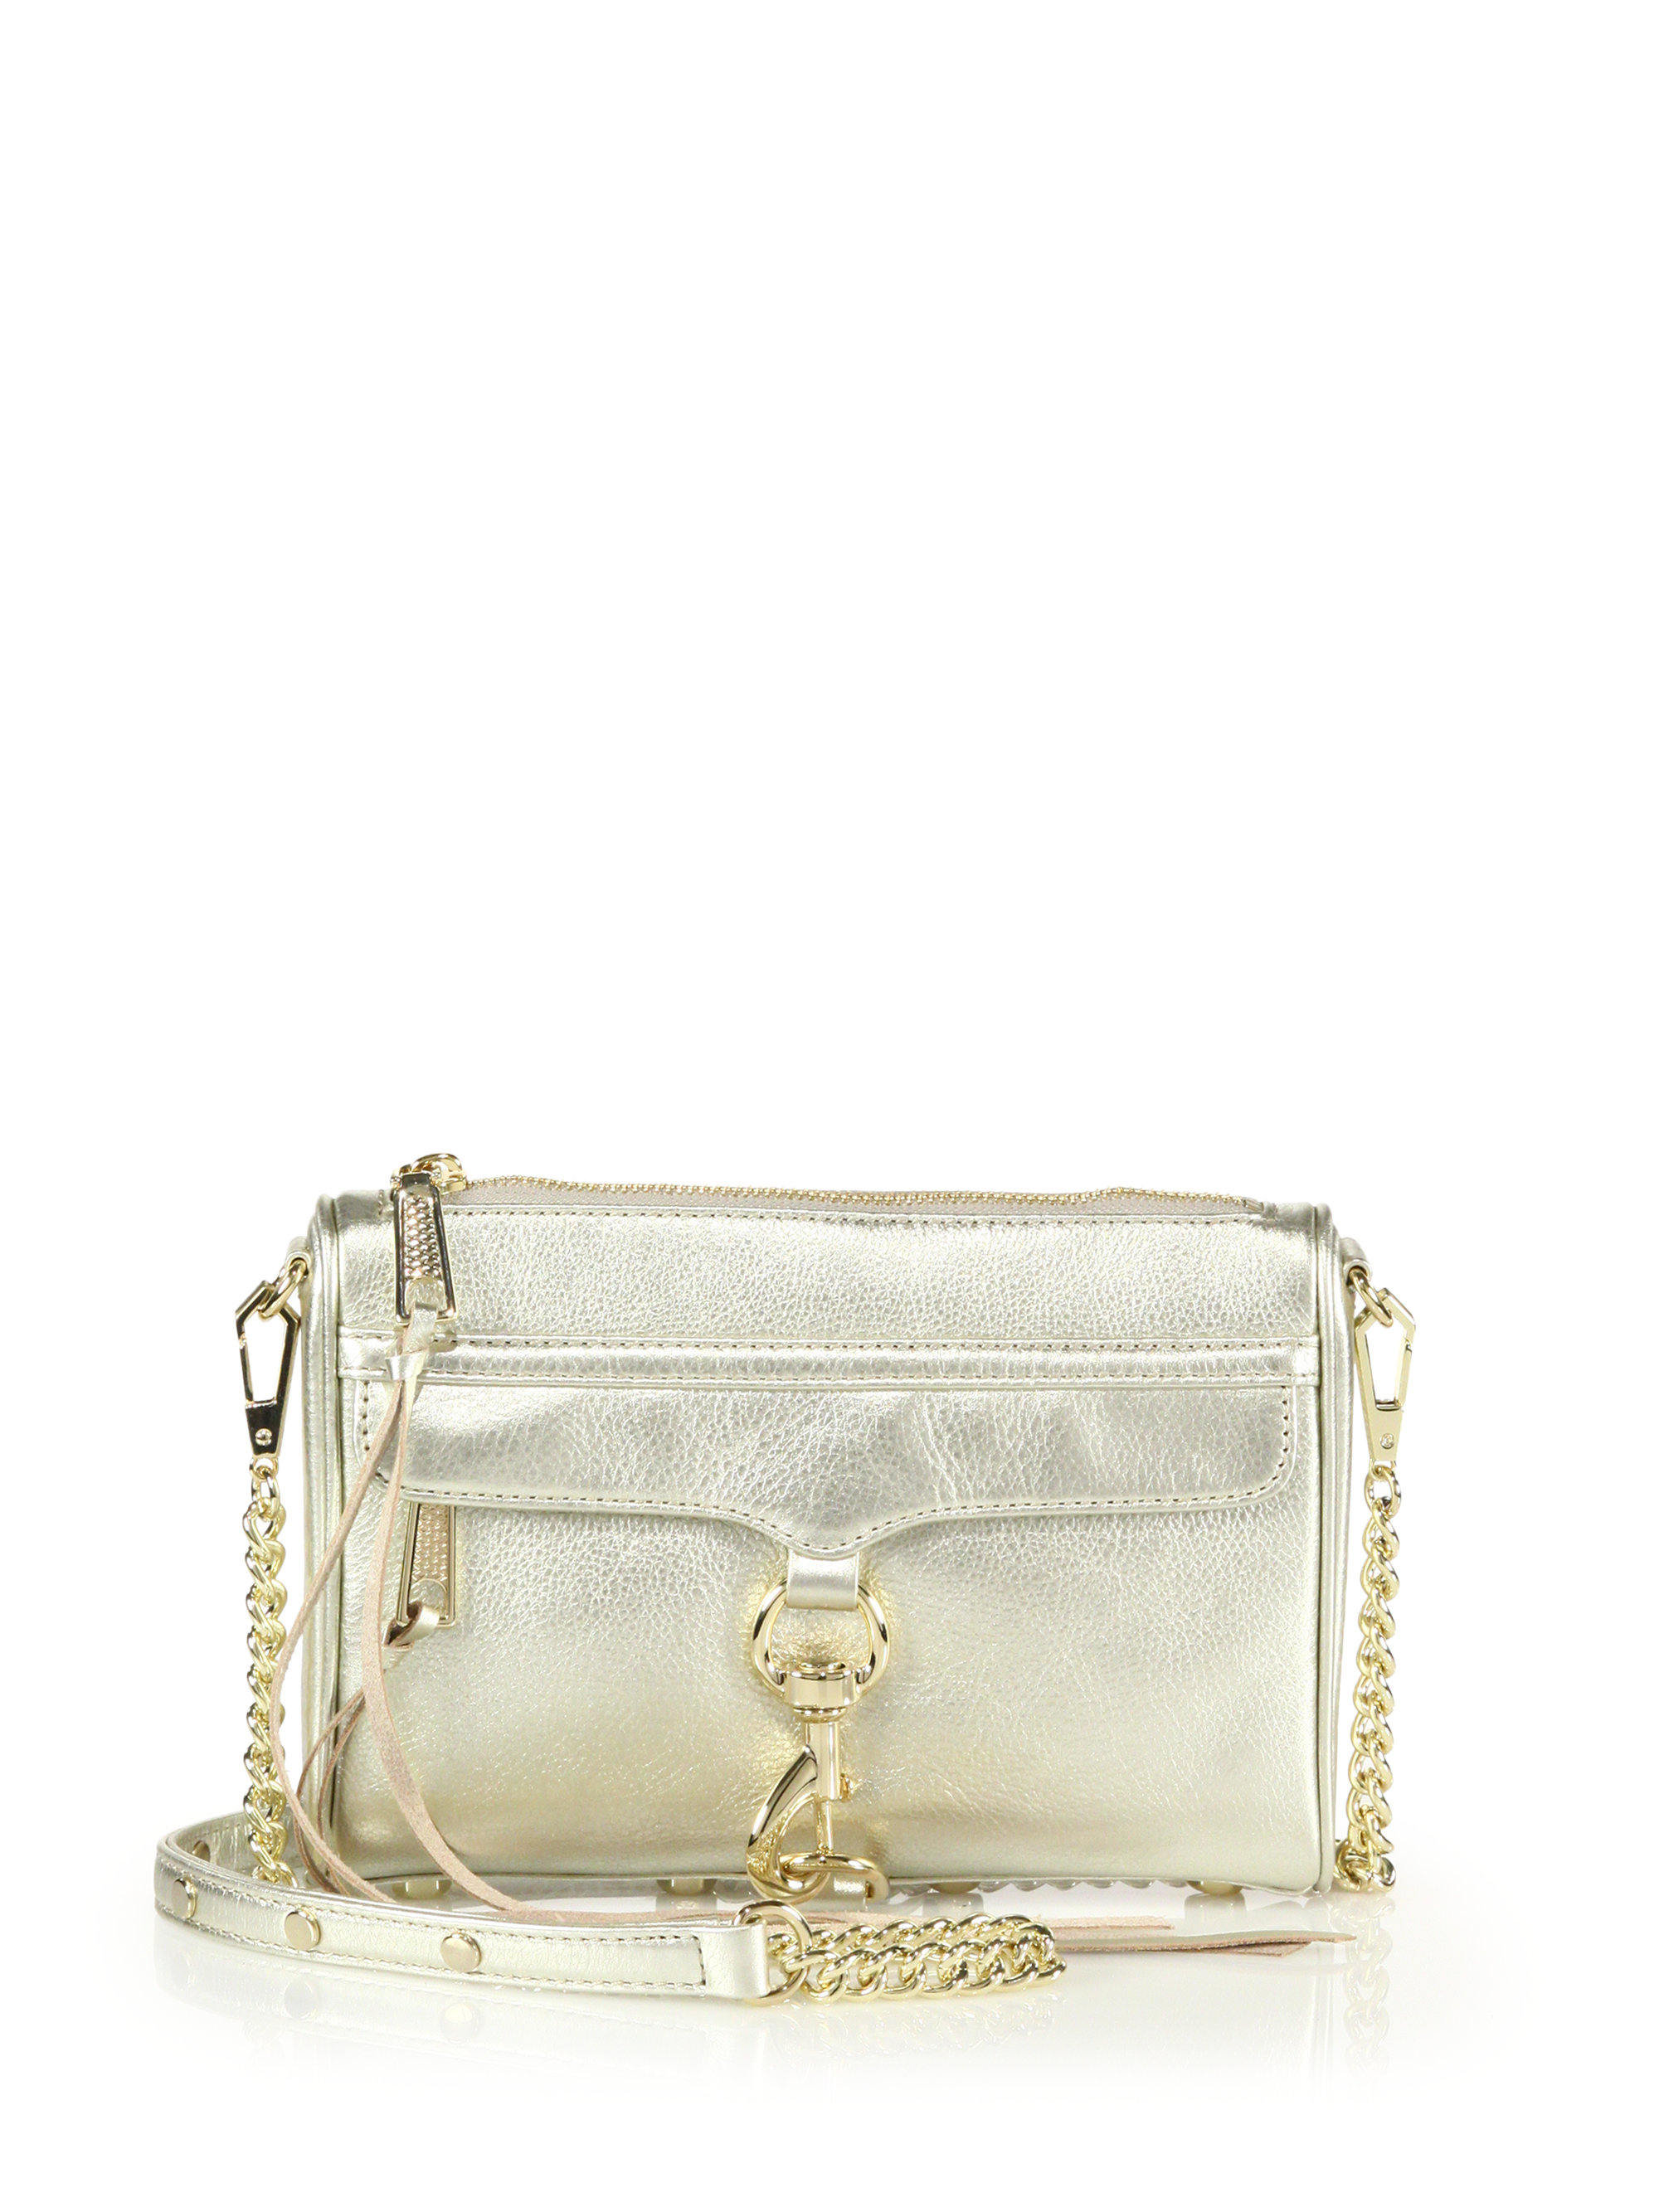 20fea7bf50 Lyst - Rebecca Minkoff Mini Mac Metallic Convertible Crossbody Bag ...